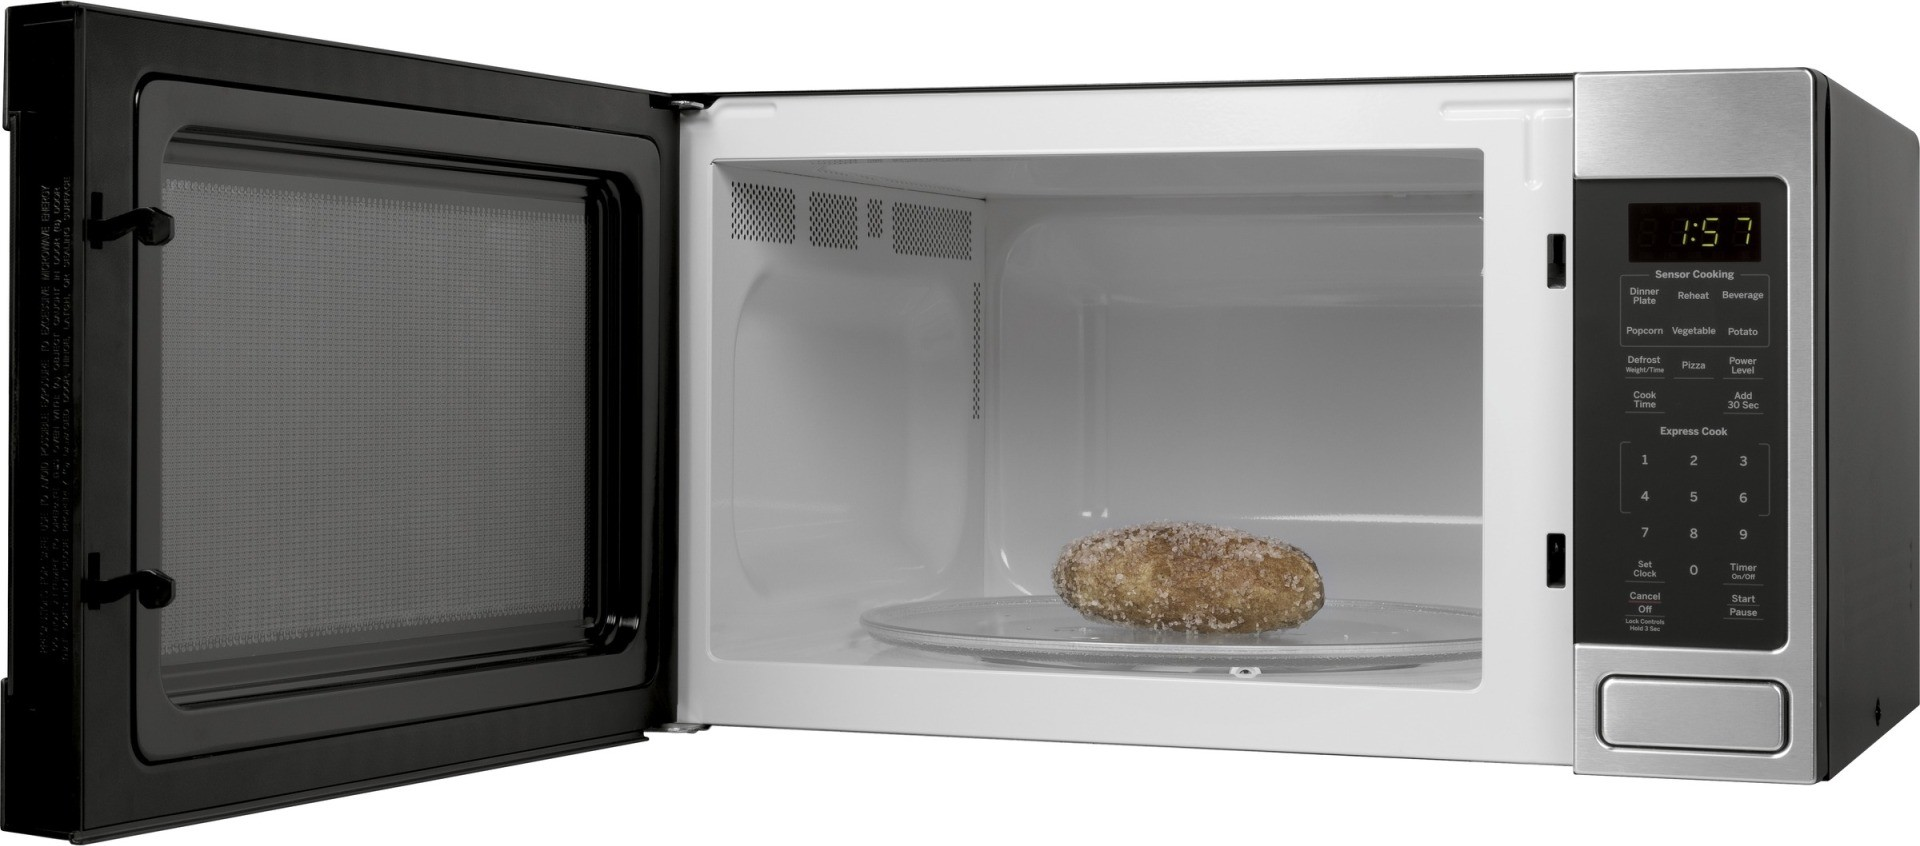 Jes1657smss Ge 1 6 Cu Ft Countertop Microwave